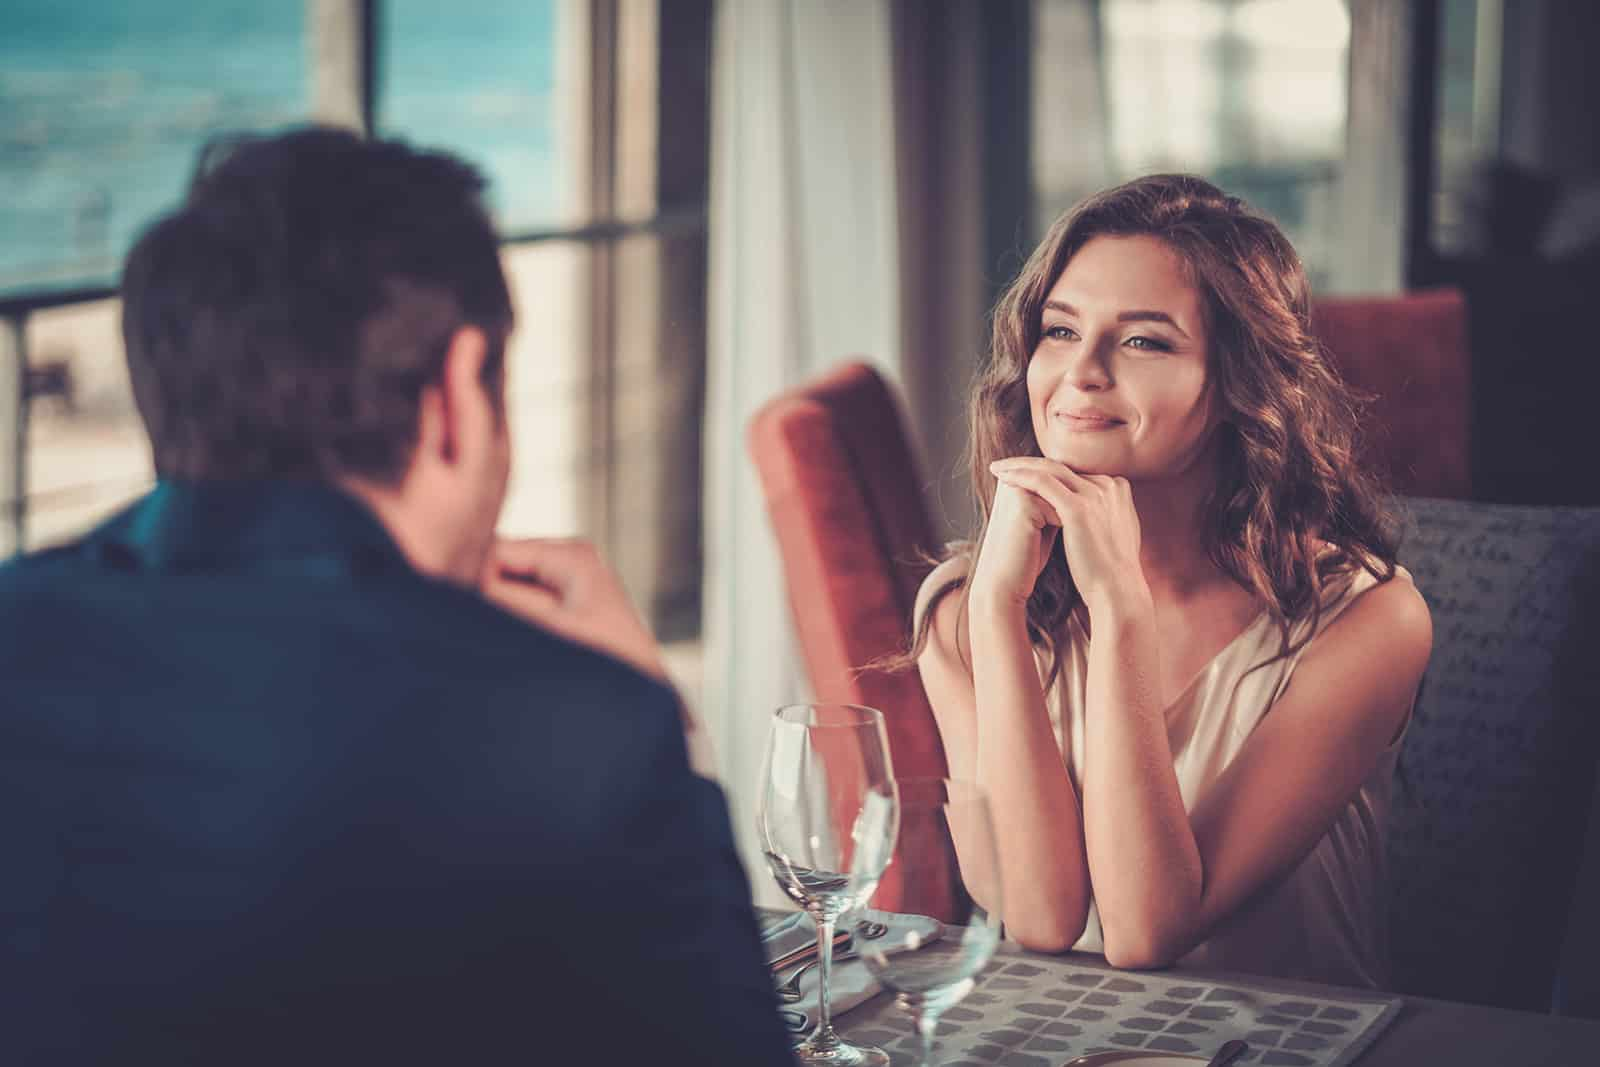 smiling woman looking at a man while sitting together in a restaurant